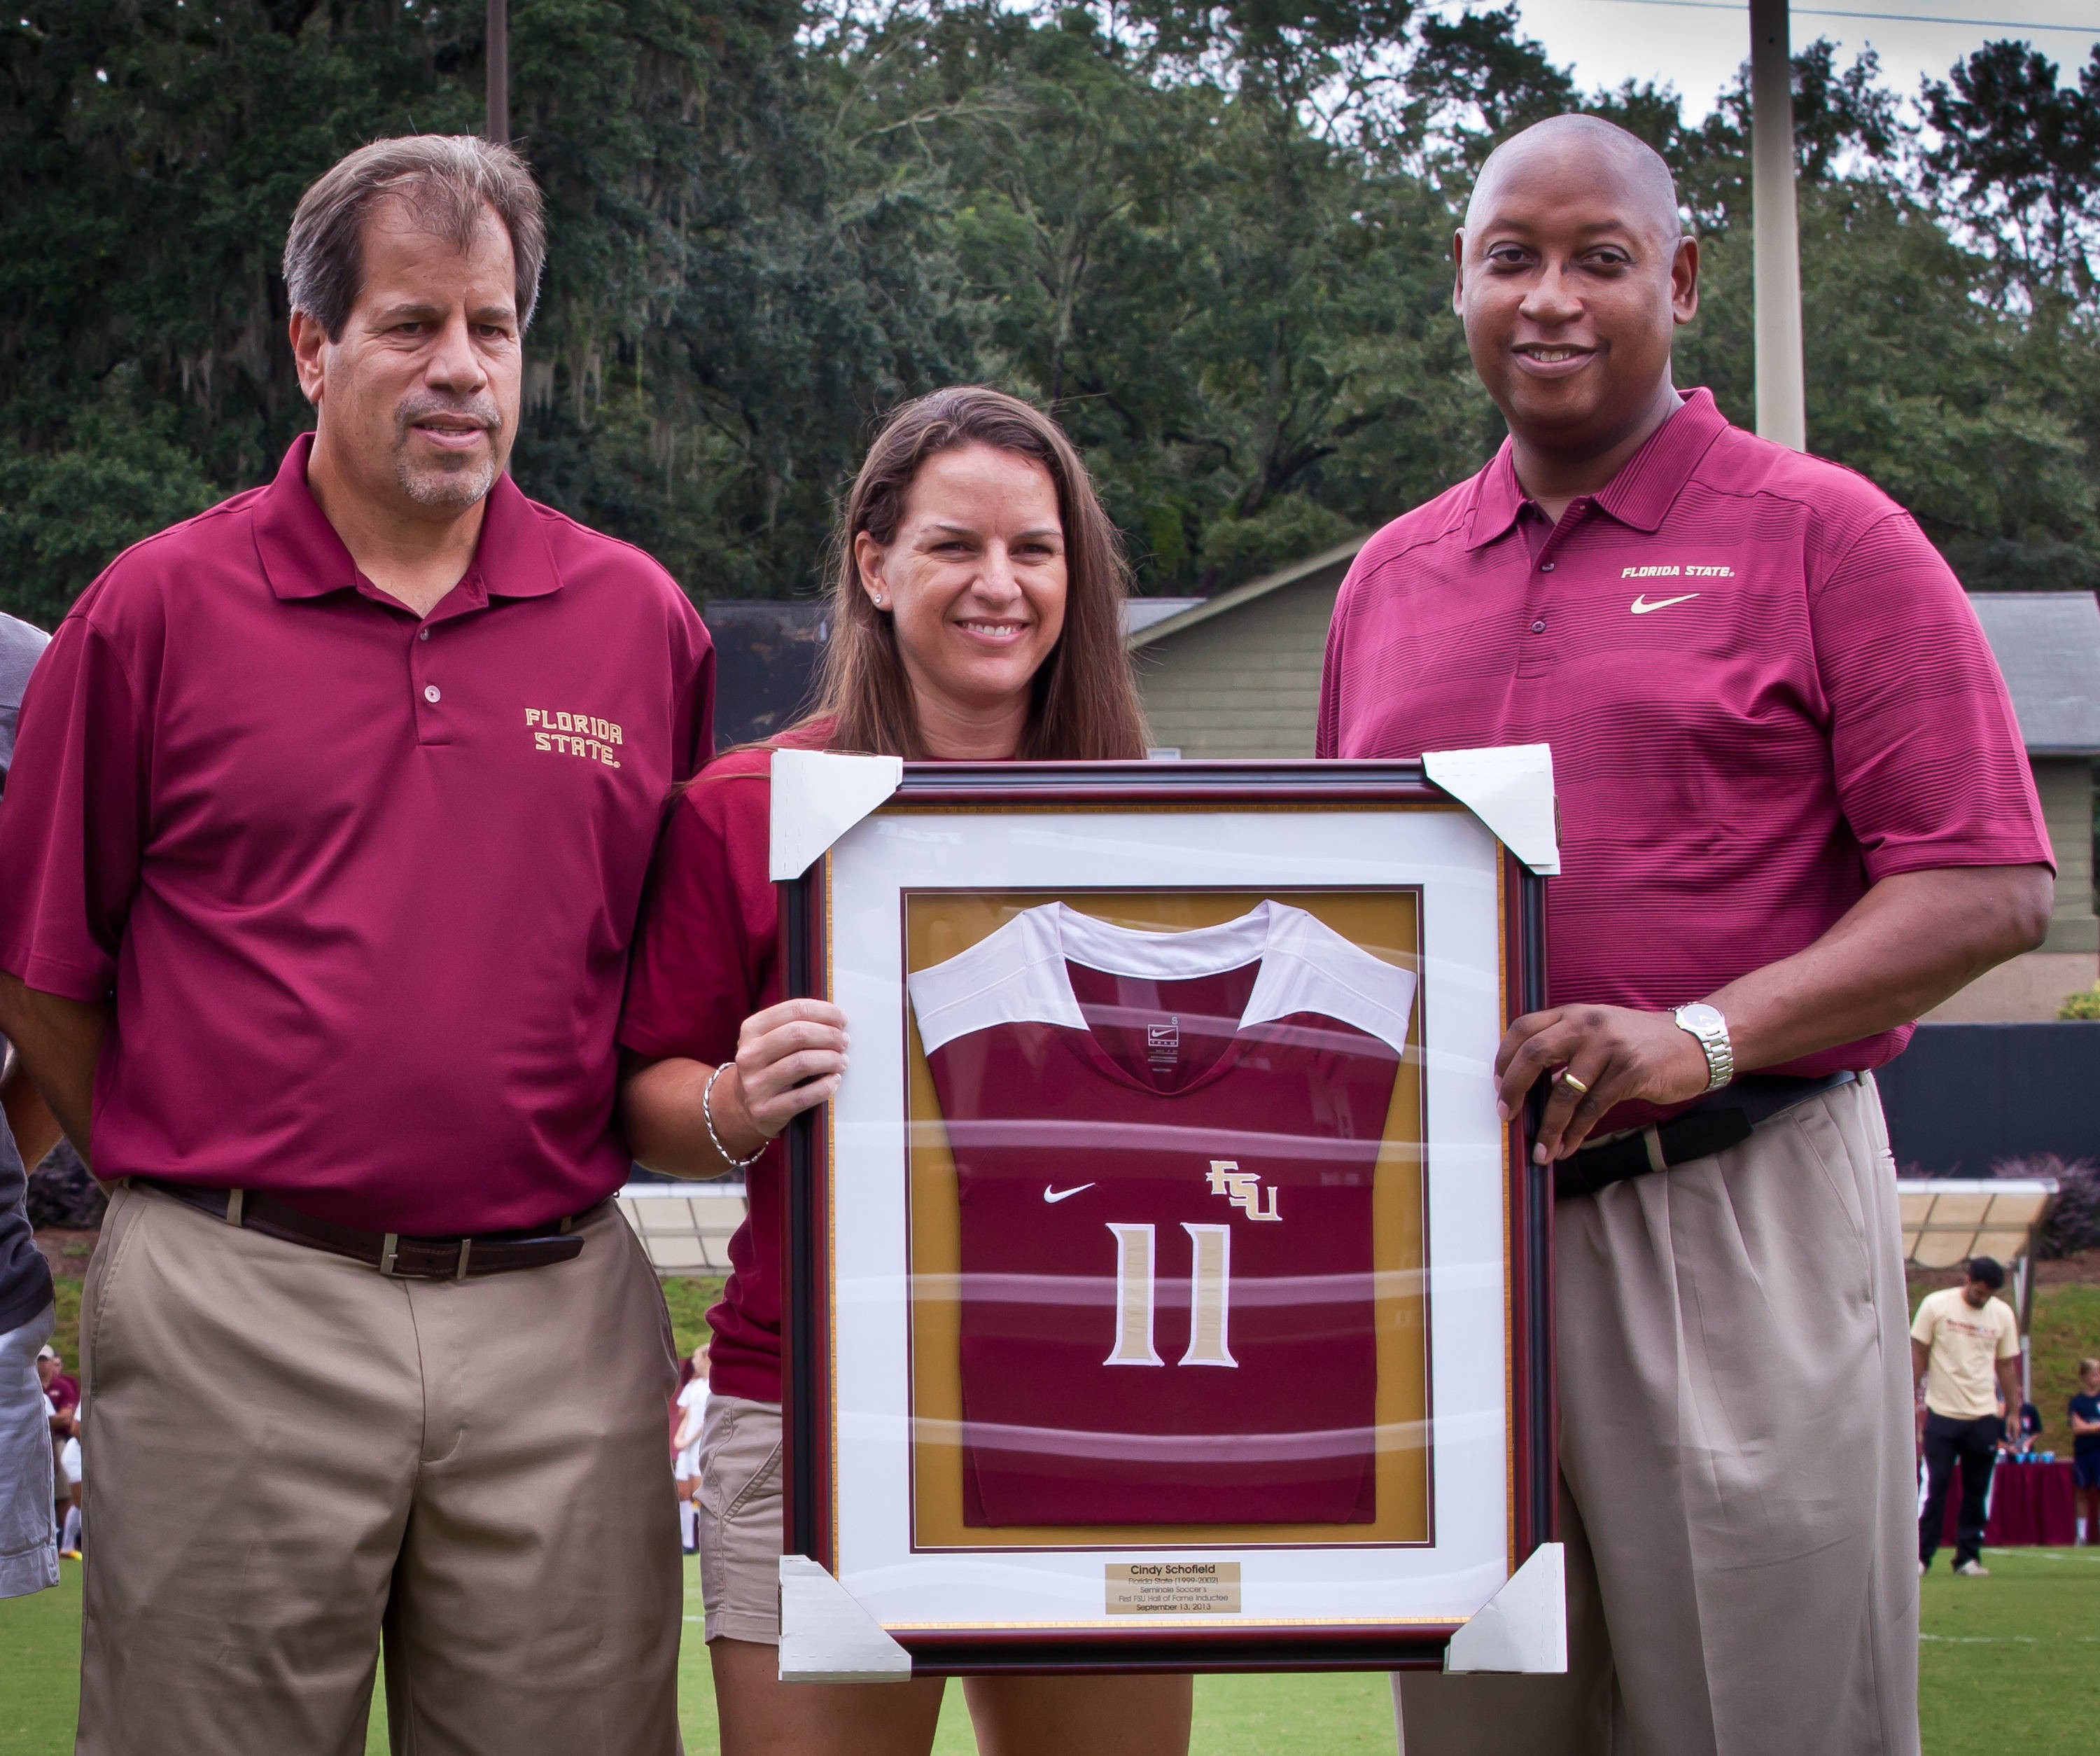 Mark Krikorian and AD Stan Wilcox recognize Cindy Schofield, women's soccer first and 2013 inductee into the FSU Sports Hall of Fame.